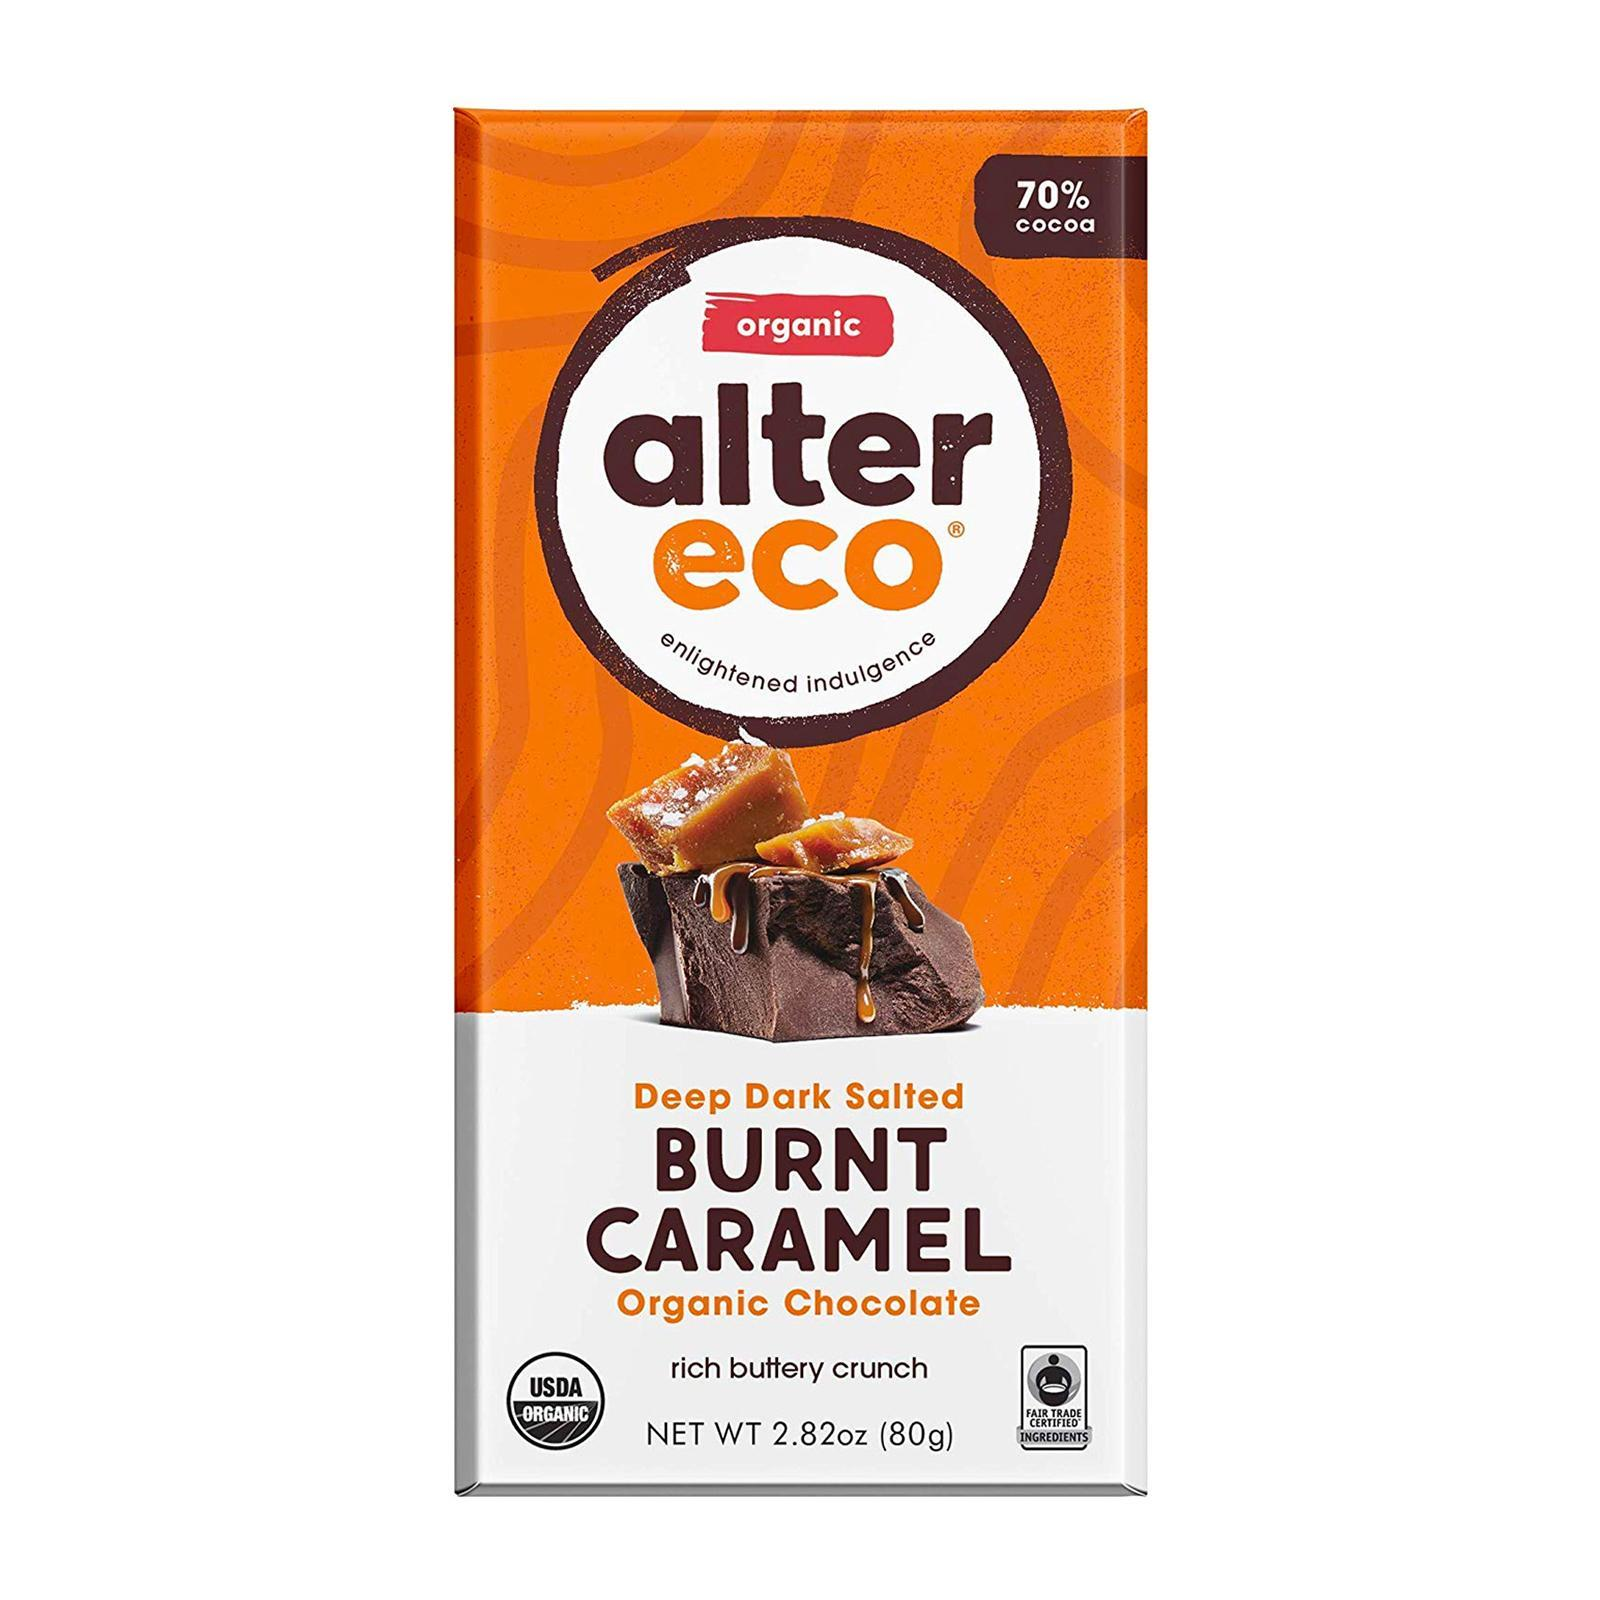 Alter Eco Organic Dark Salted Burnt Caramel Chocolate - By Wholesome Harvest